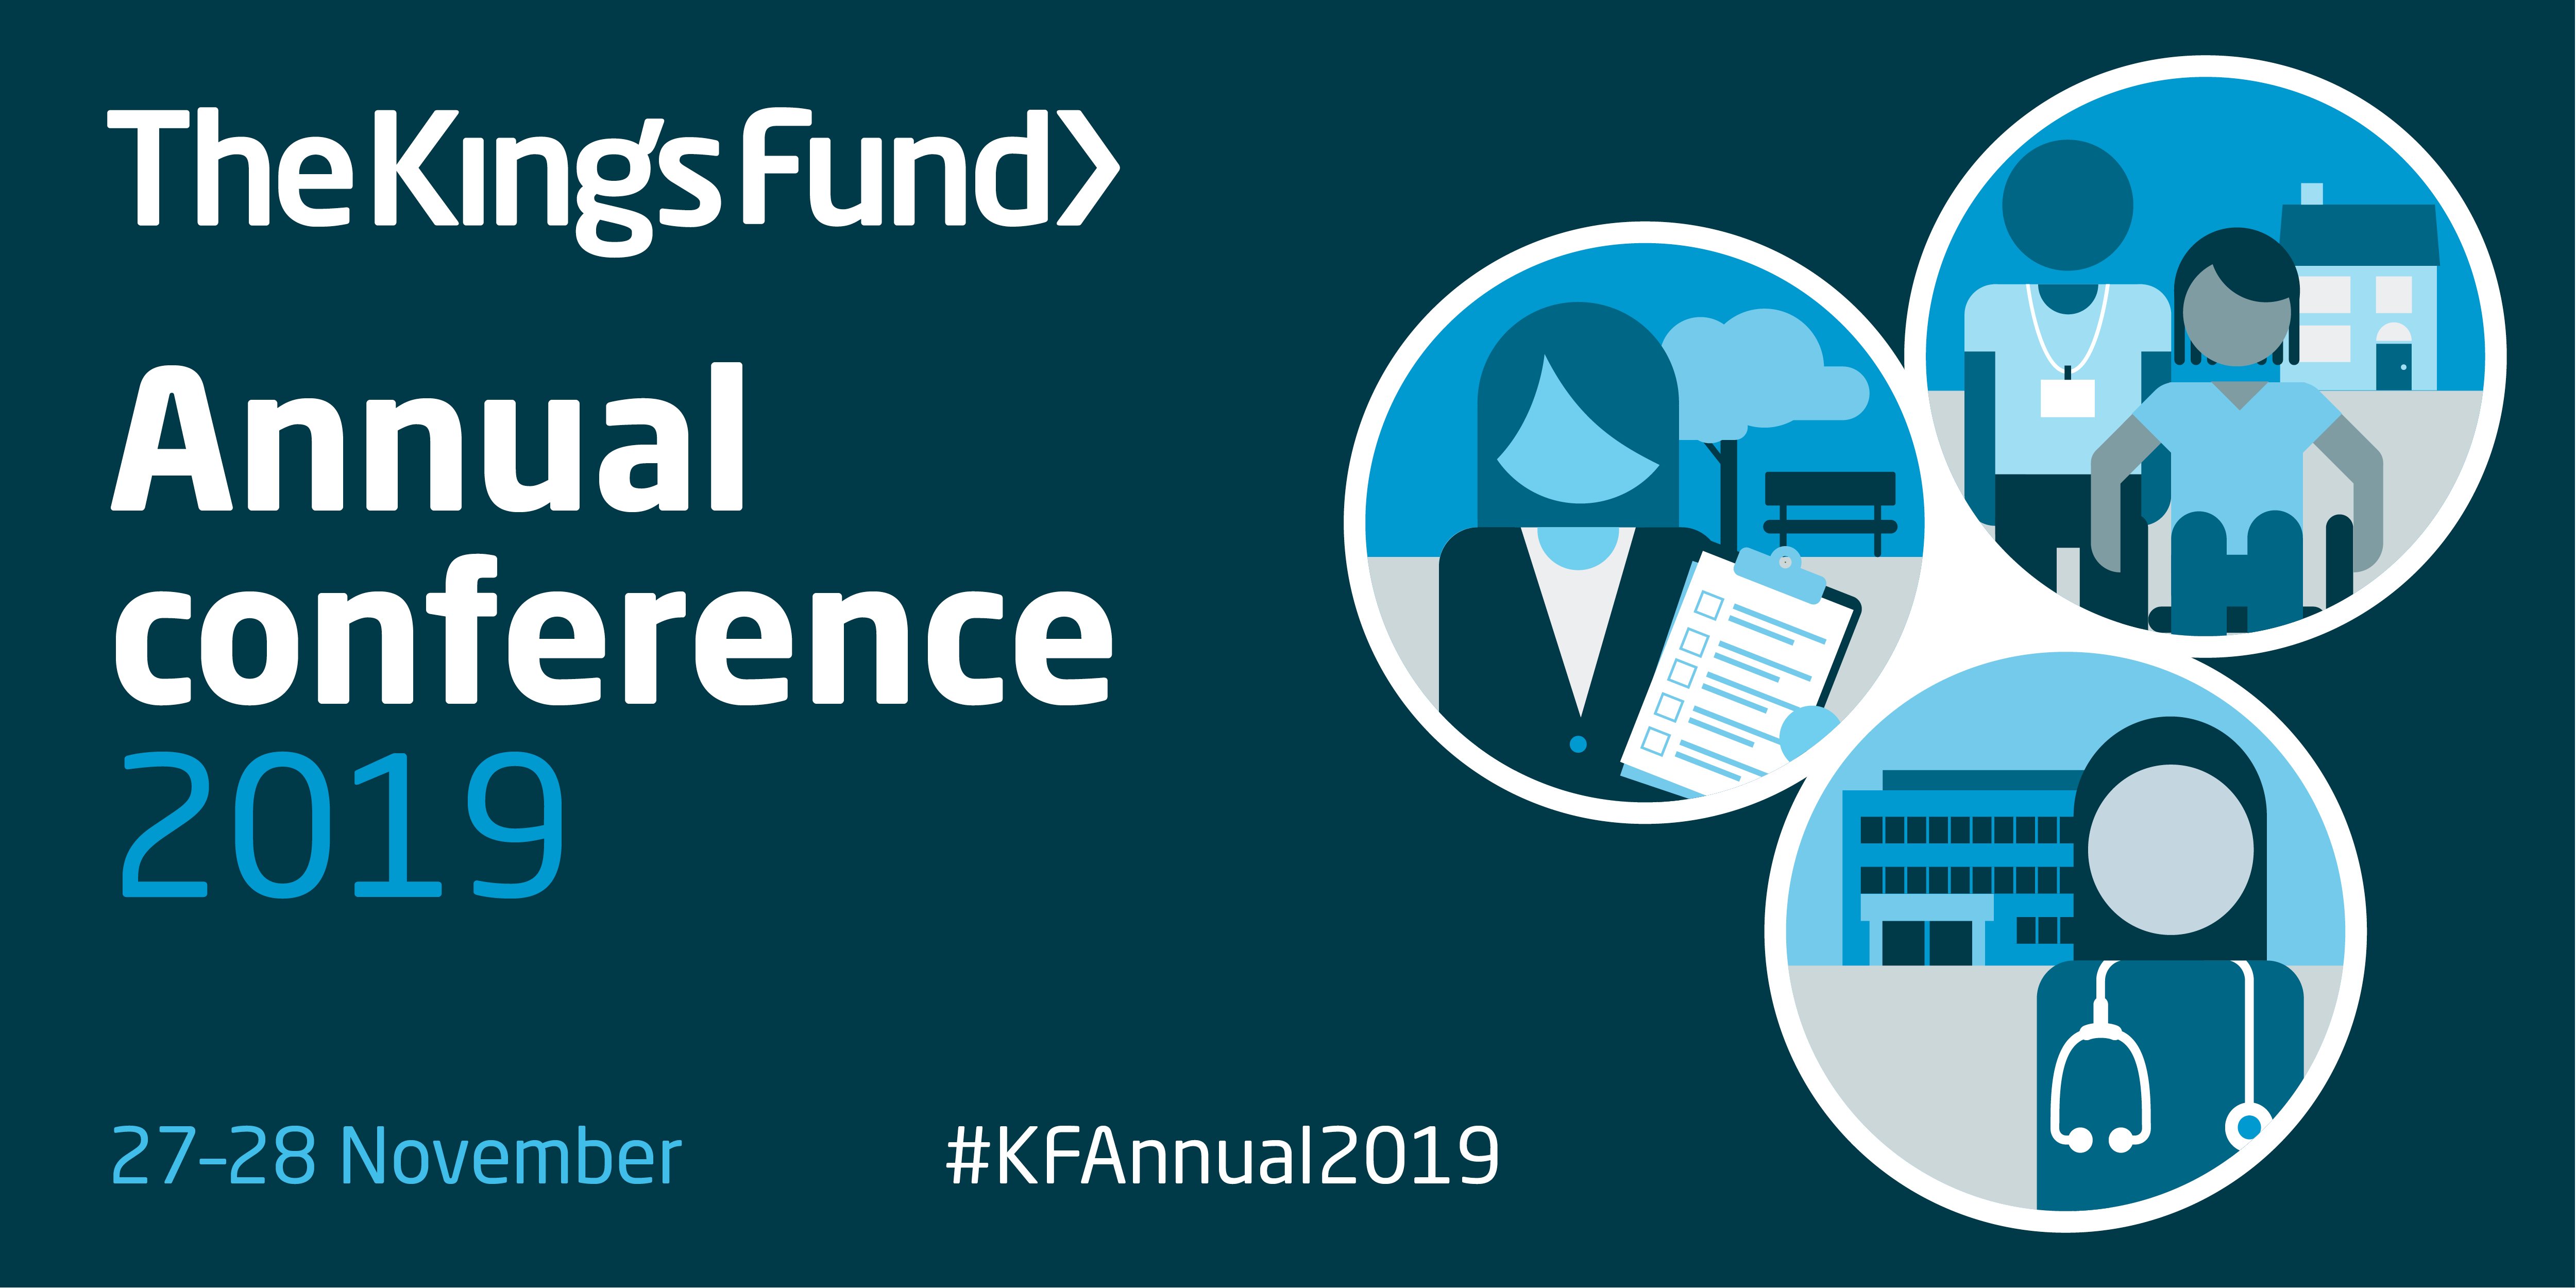 The King's Fund annual conference 2019 | The King's Fund